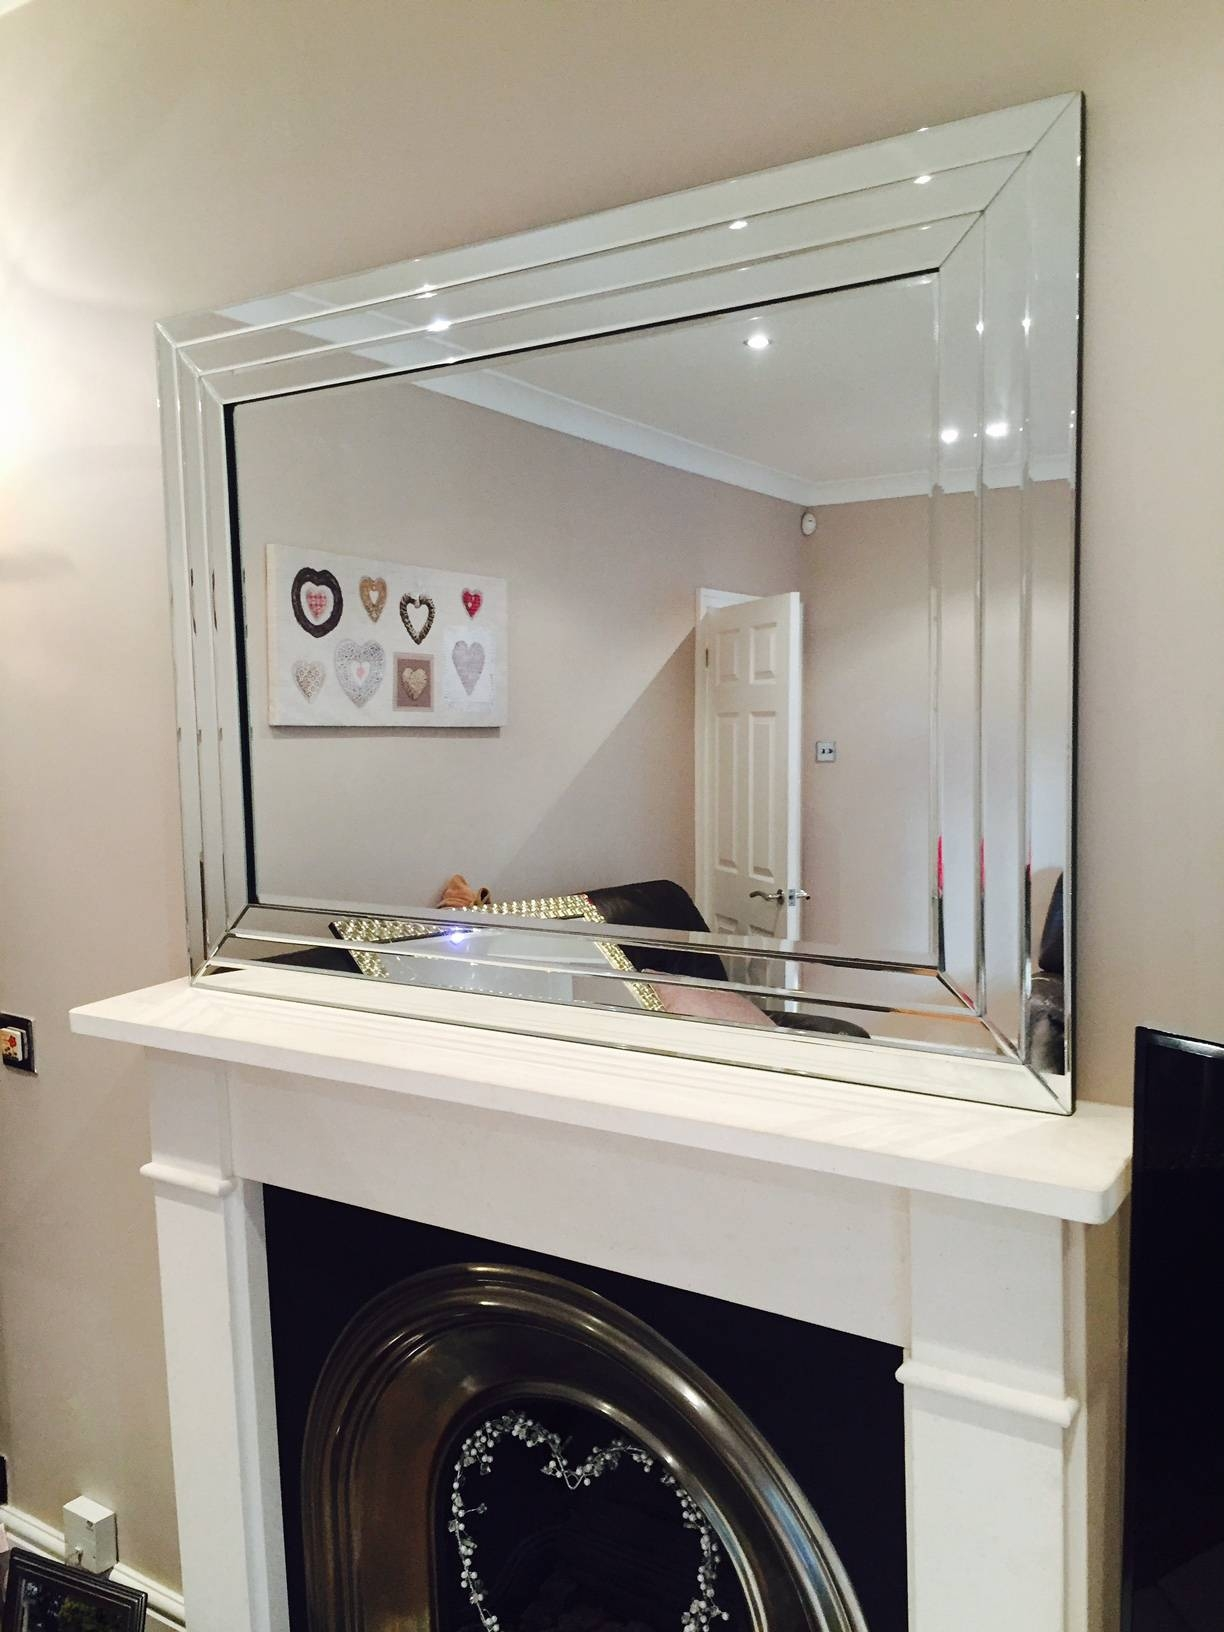 Prs Group Uk | Large Venetian Bevelled Wall Mirror 117Cm X 87Cm regarding Large Bevelled Mirrors (Image 22 of 25)